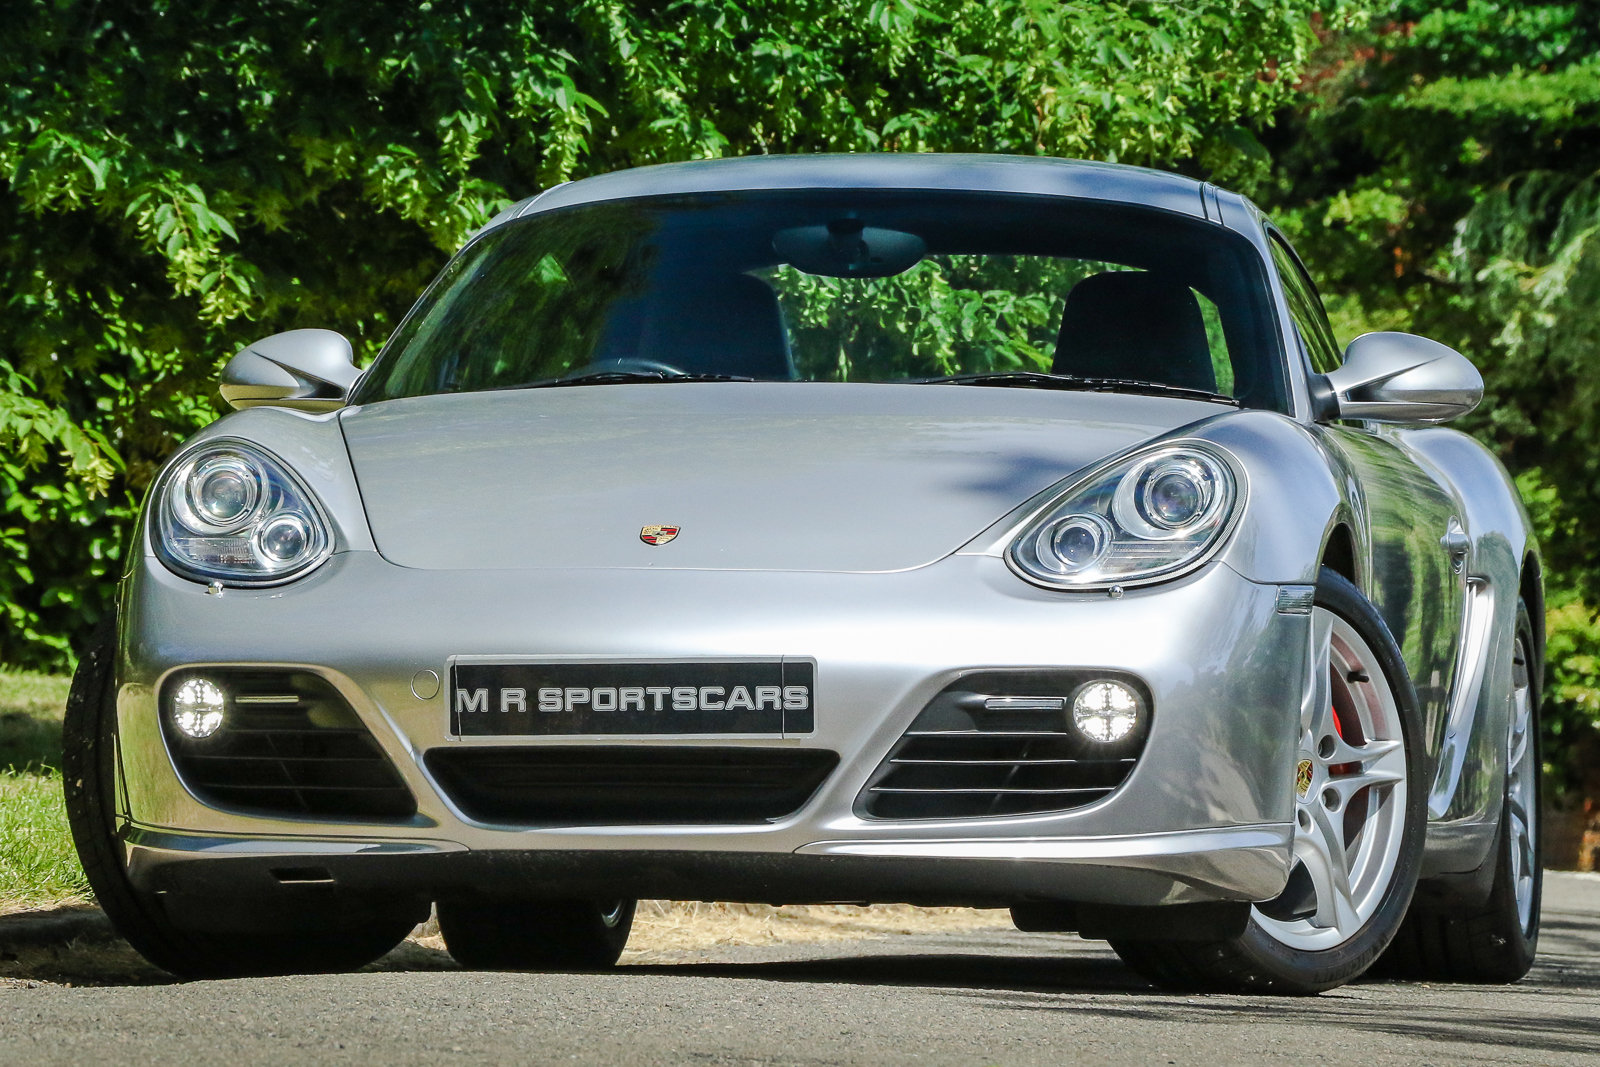 2009 Porsche Cayman S 987.2 Gen 2 GT Silver Metallic PASM For Sale (picture 1 of 6)